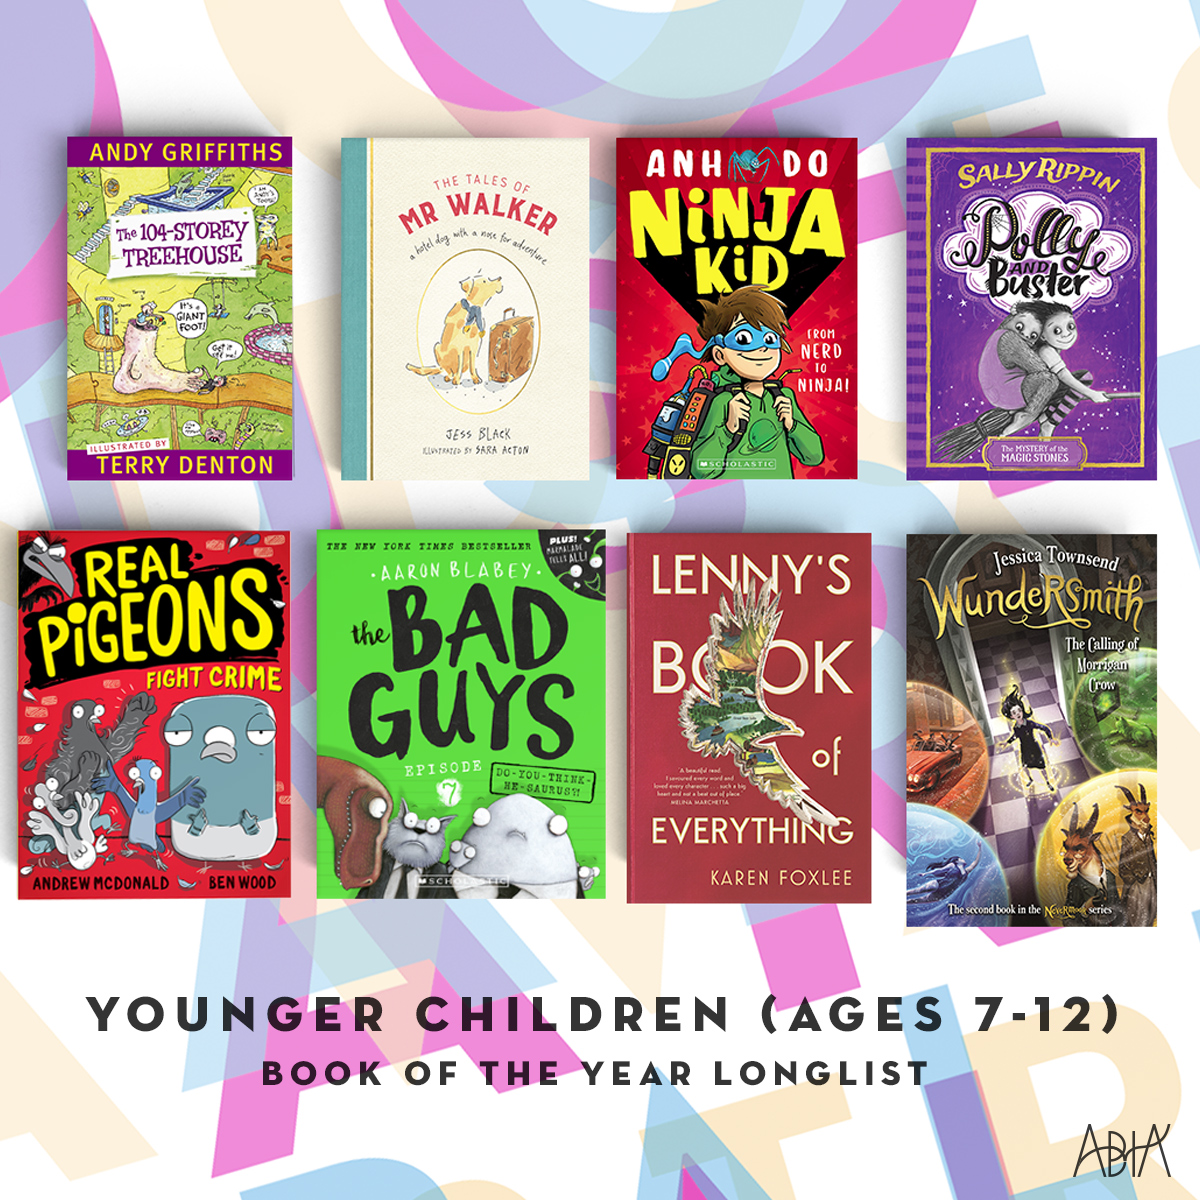 BOOK OF THE YEAR FOR YOUNGER CHILDREN (AGES 7-12):    Lenny's Book of Everything,  Karen Foxlee (Allen & Unwin, Allen & Unwin)   Ninja Kid #1 , Anh Do and Jeremy Ley (Scholastic Australia, Scholastic Press)   Polly and Buster: The Mystery of the Magic Stones,   Sally Rippin (Hardie Grant Egmont, Hardie Grant Egmont)   Real Pigeons Fight Crime , Andrew McDonald & Ben Wood (Hardie Grant Egmont, Hardie Grant Egmont)   The 104-Storey Treehouse,  Andy Griffiths, Terry Denton (Pan Macmillan Australia, Macmillan Australia)   The Bad Guys Episode 7: Do-You-Think-He-Saurus? !, Aaron Blabey (Scholastic Australia, Scholastic Press)   The Tales of Mr Walker,   Jess Black and Sara Acton (Penguin Random House Australia, Puffin)   Wundersmith: The Calling of Morrigan Crow: Nevermoor 2 ,  Jessica Townsend (Hachette Australia Pty Ltd, Lothian Children's Books)